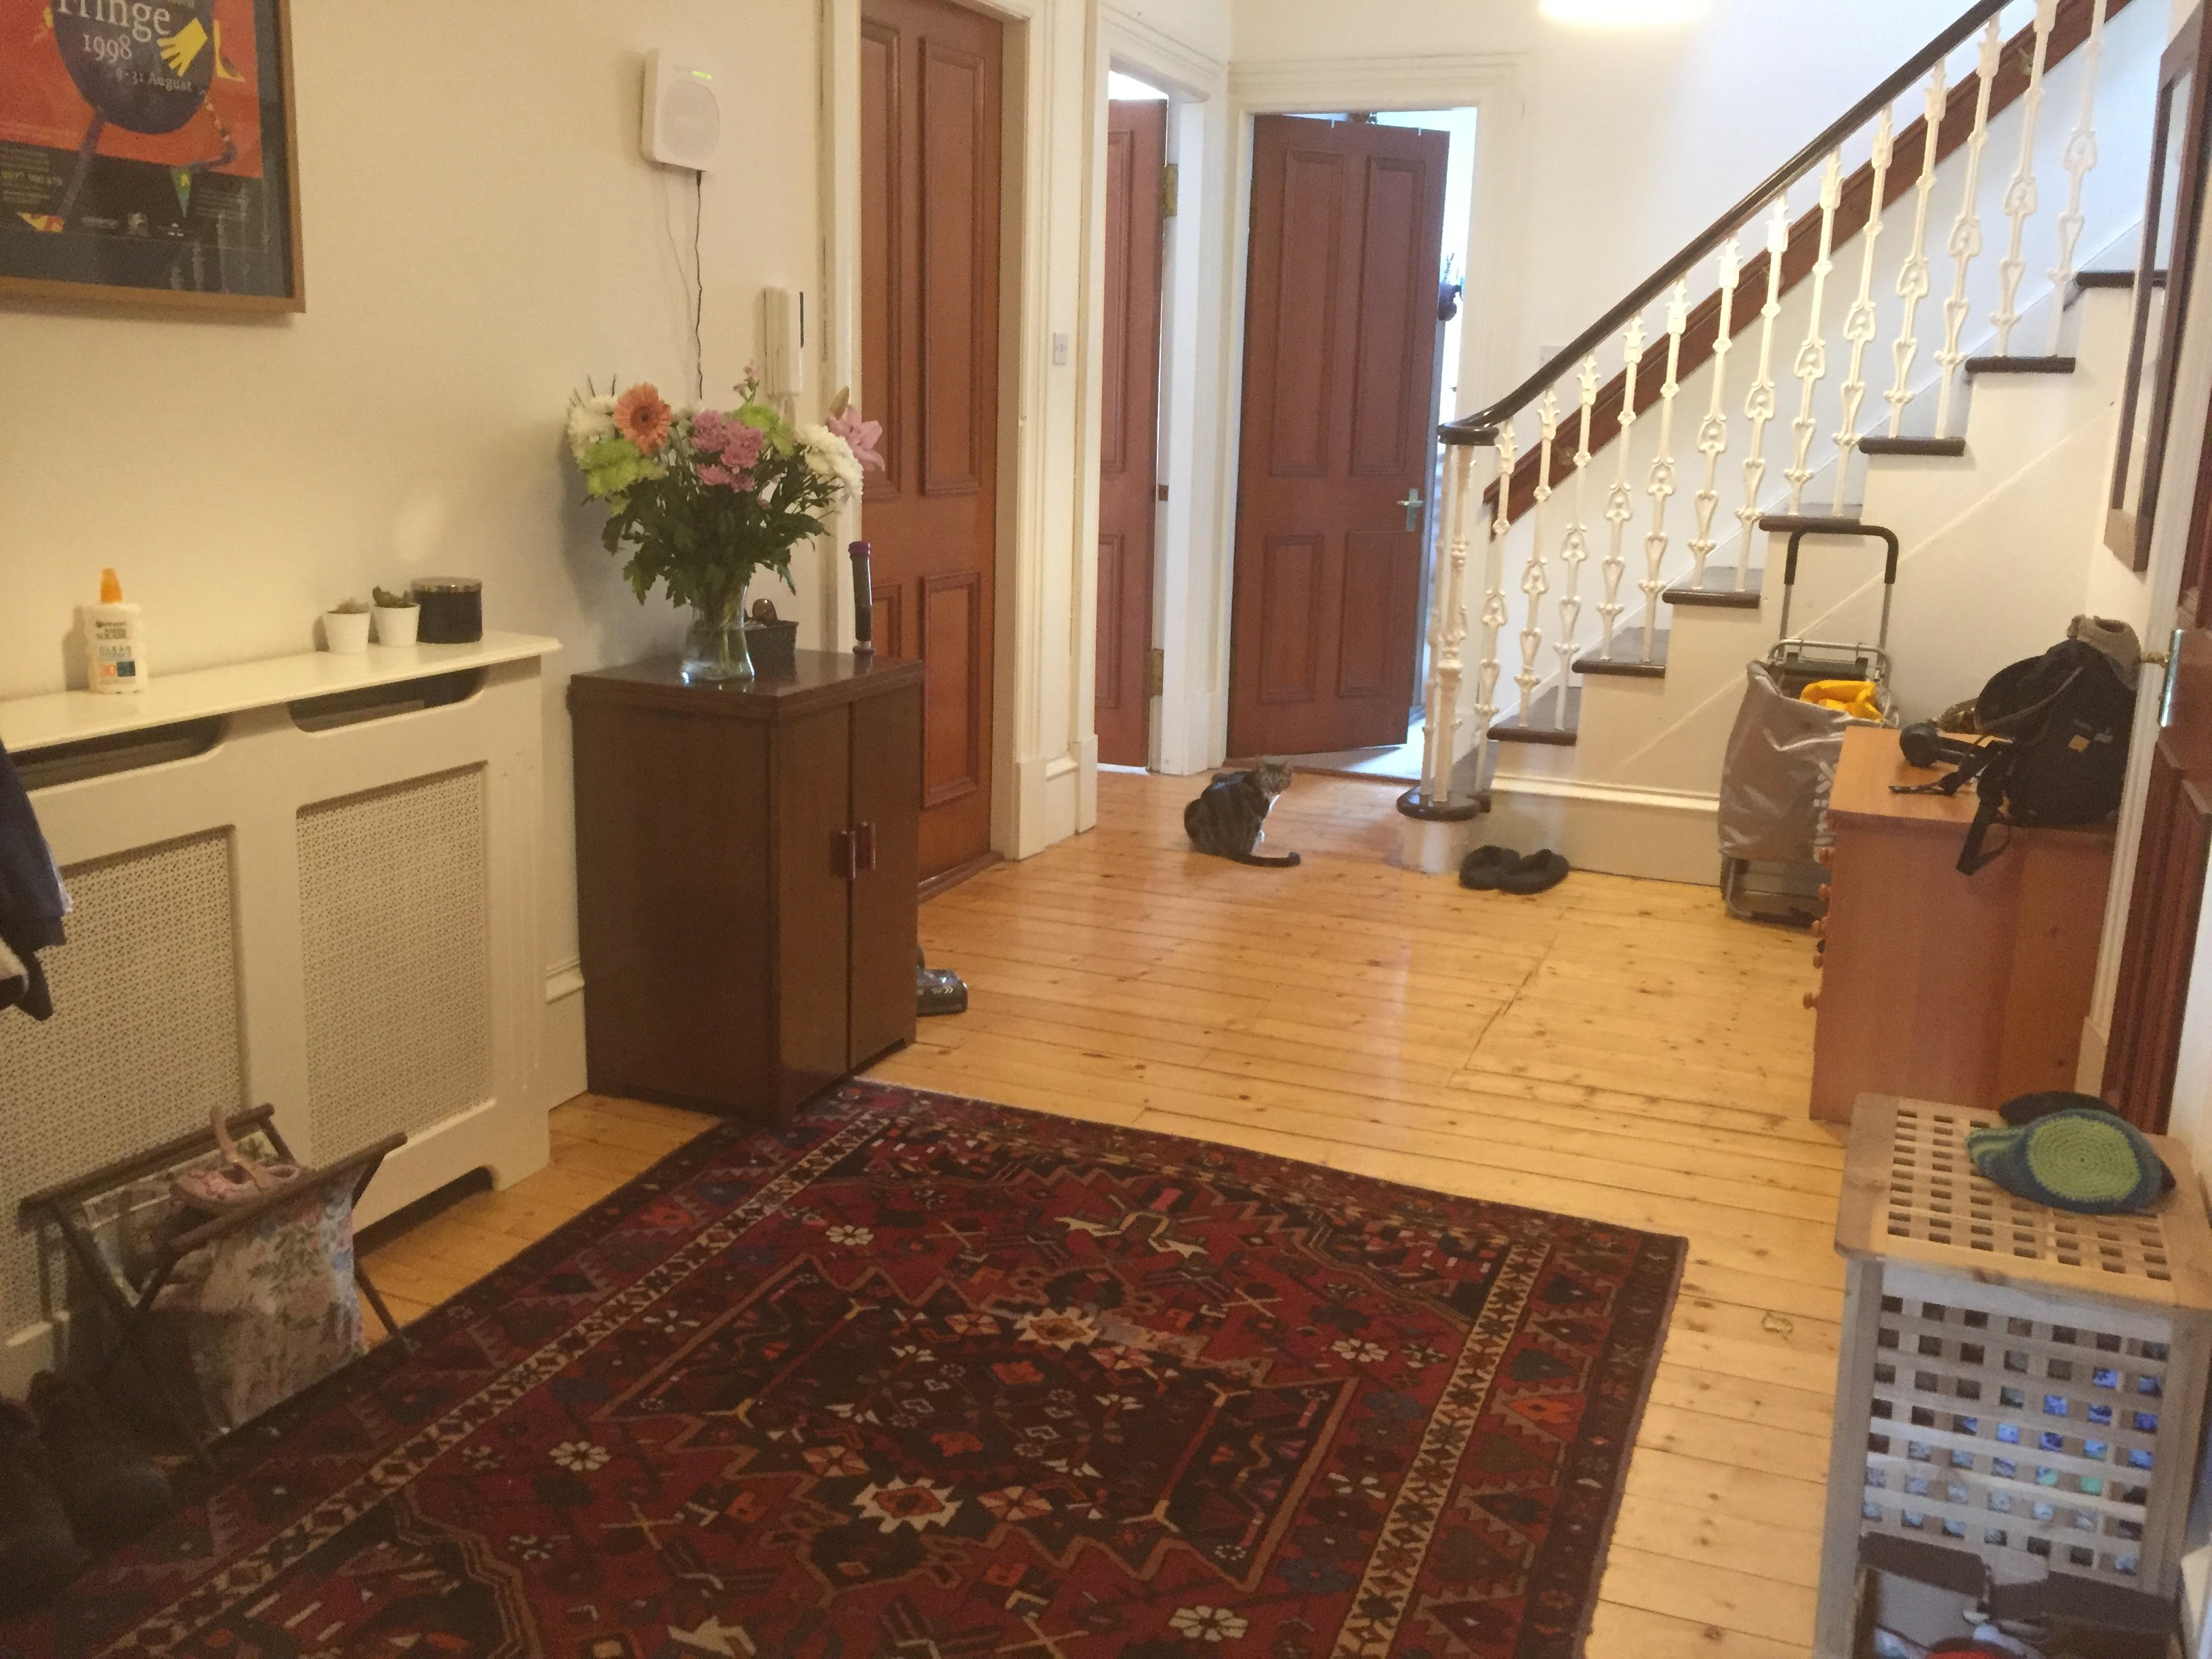 2 rooms in Stobcross (historical), Glasgow, G3 6UT RoomsLocal image